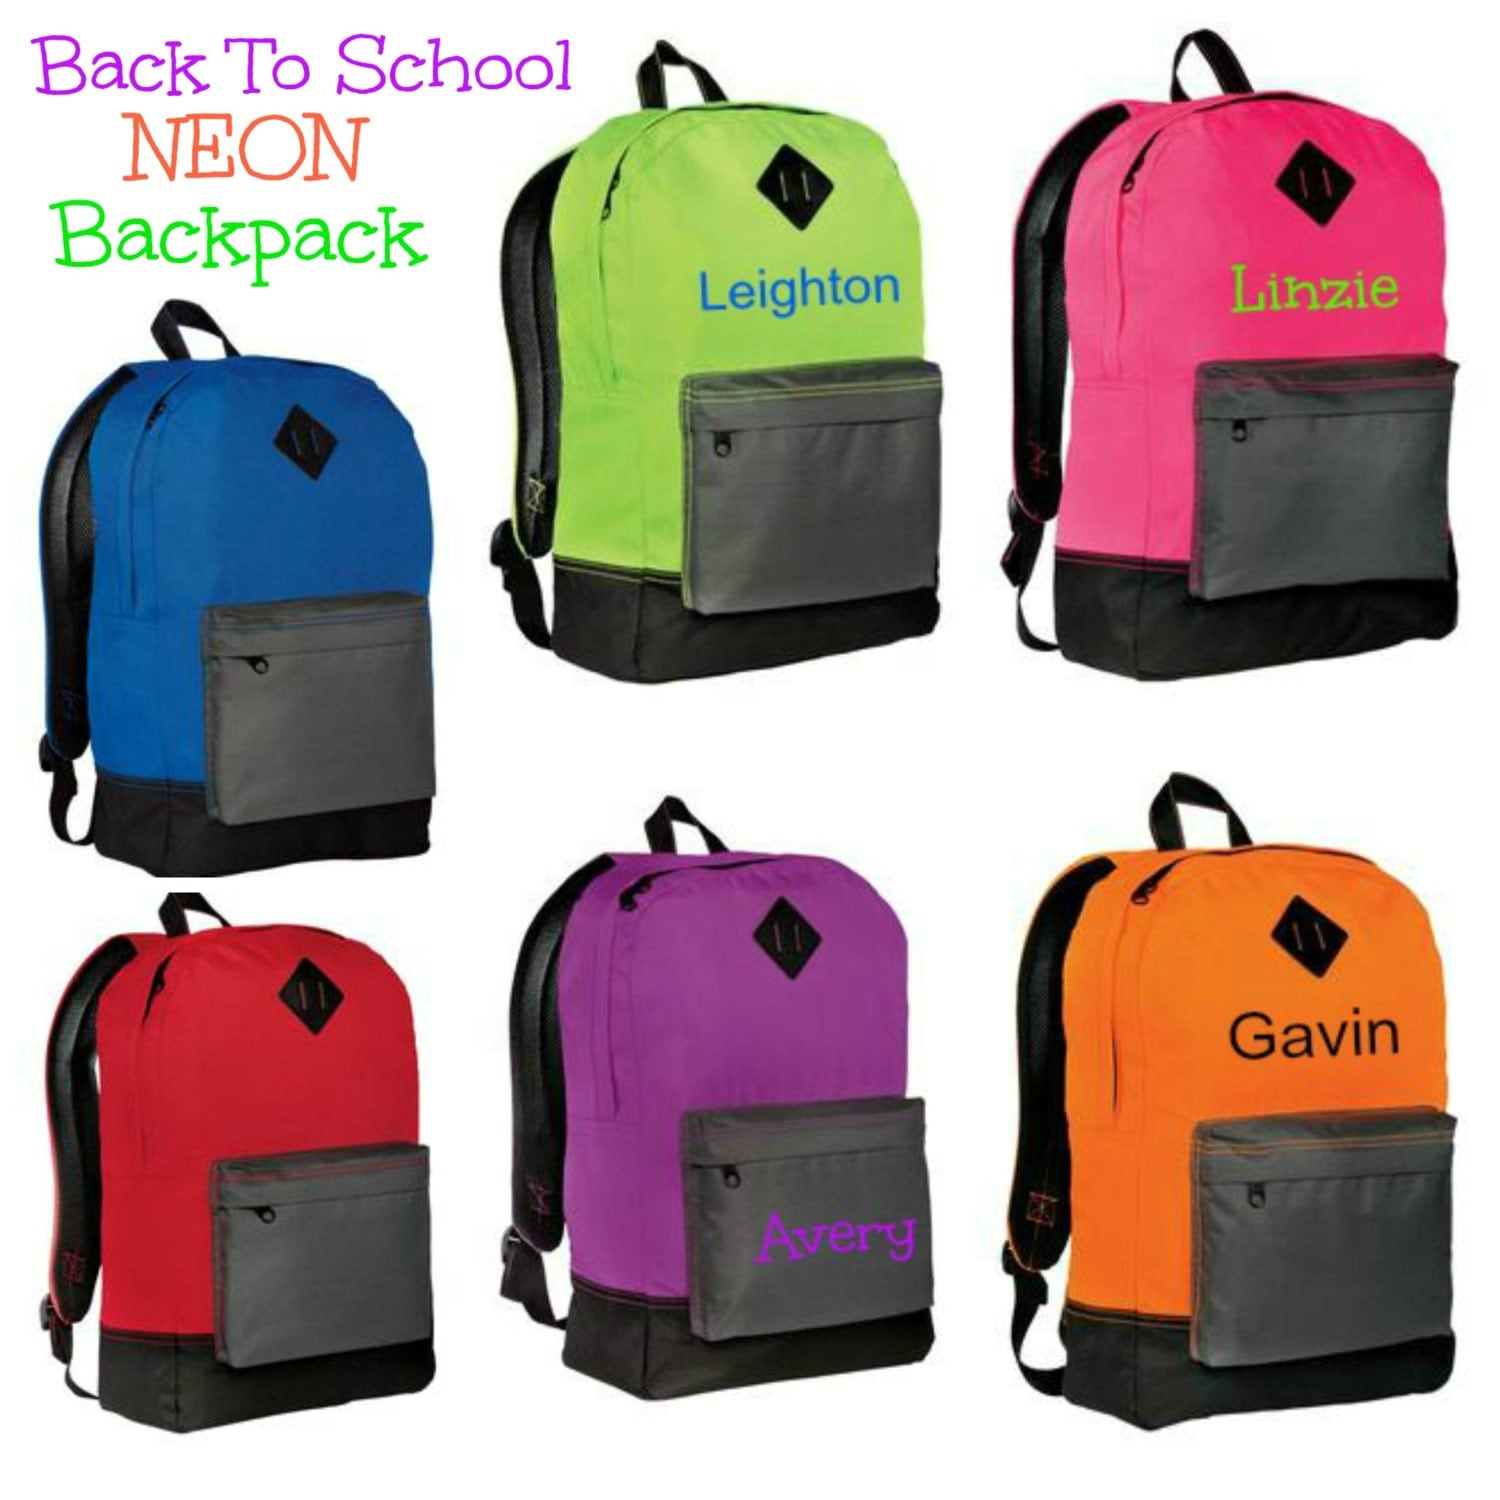 Back To School Backpacks Neon Colors for Boys and Girls